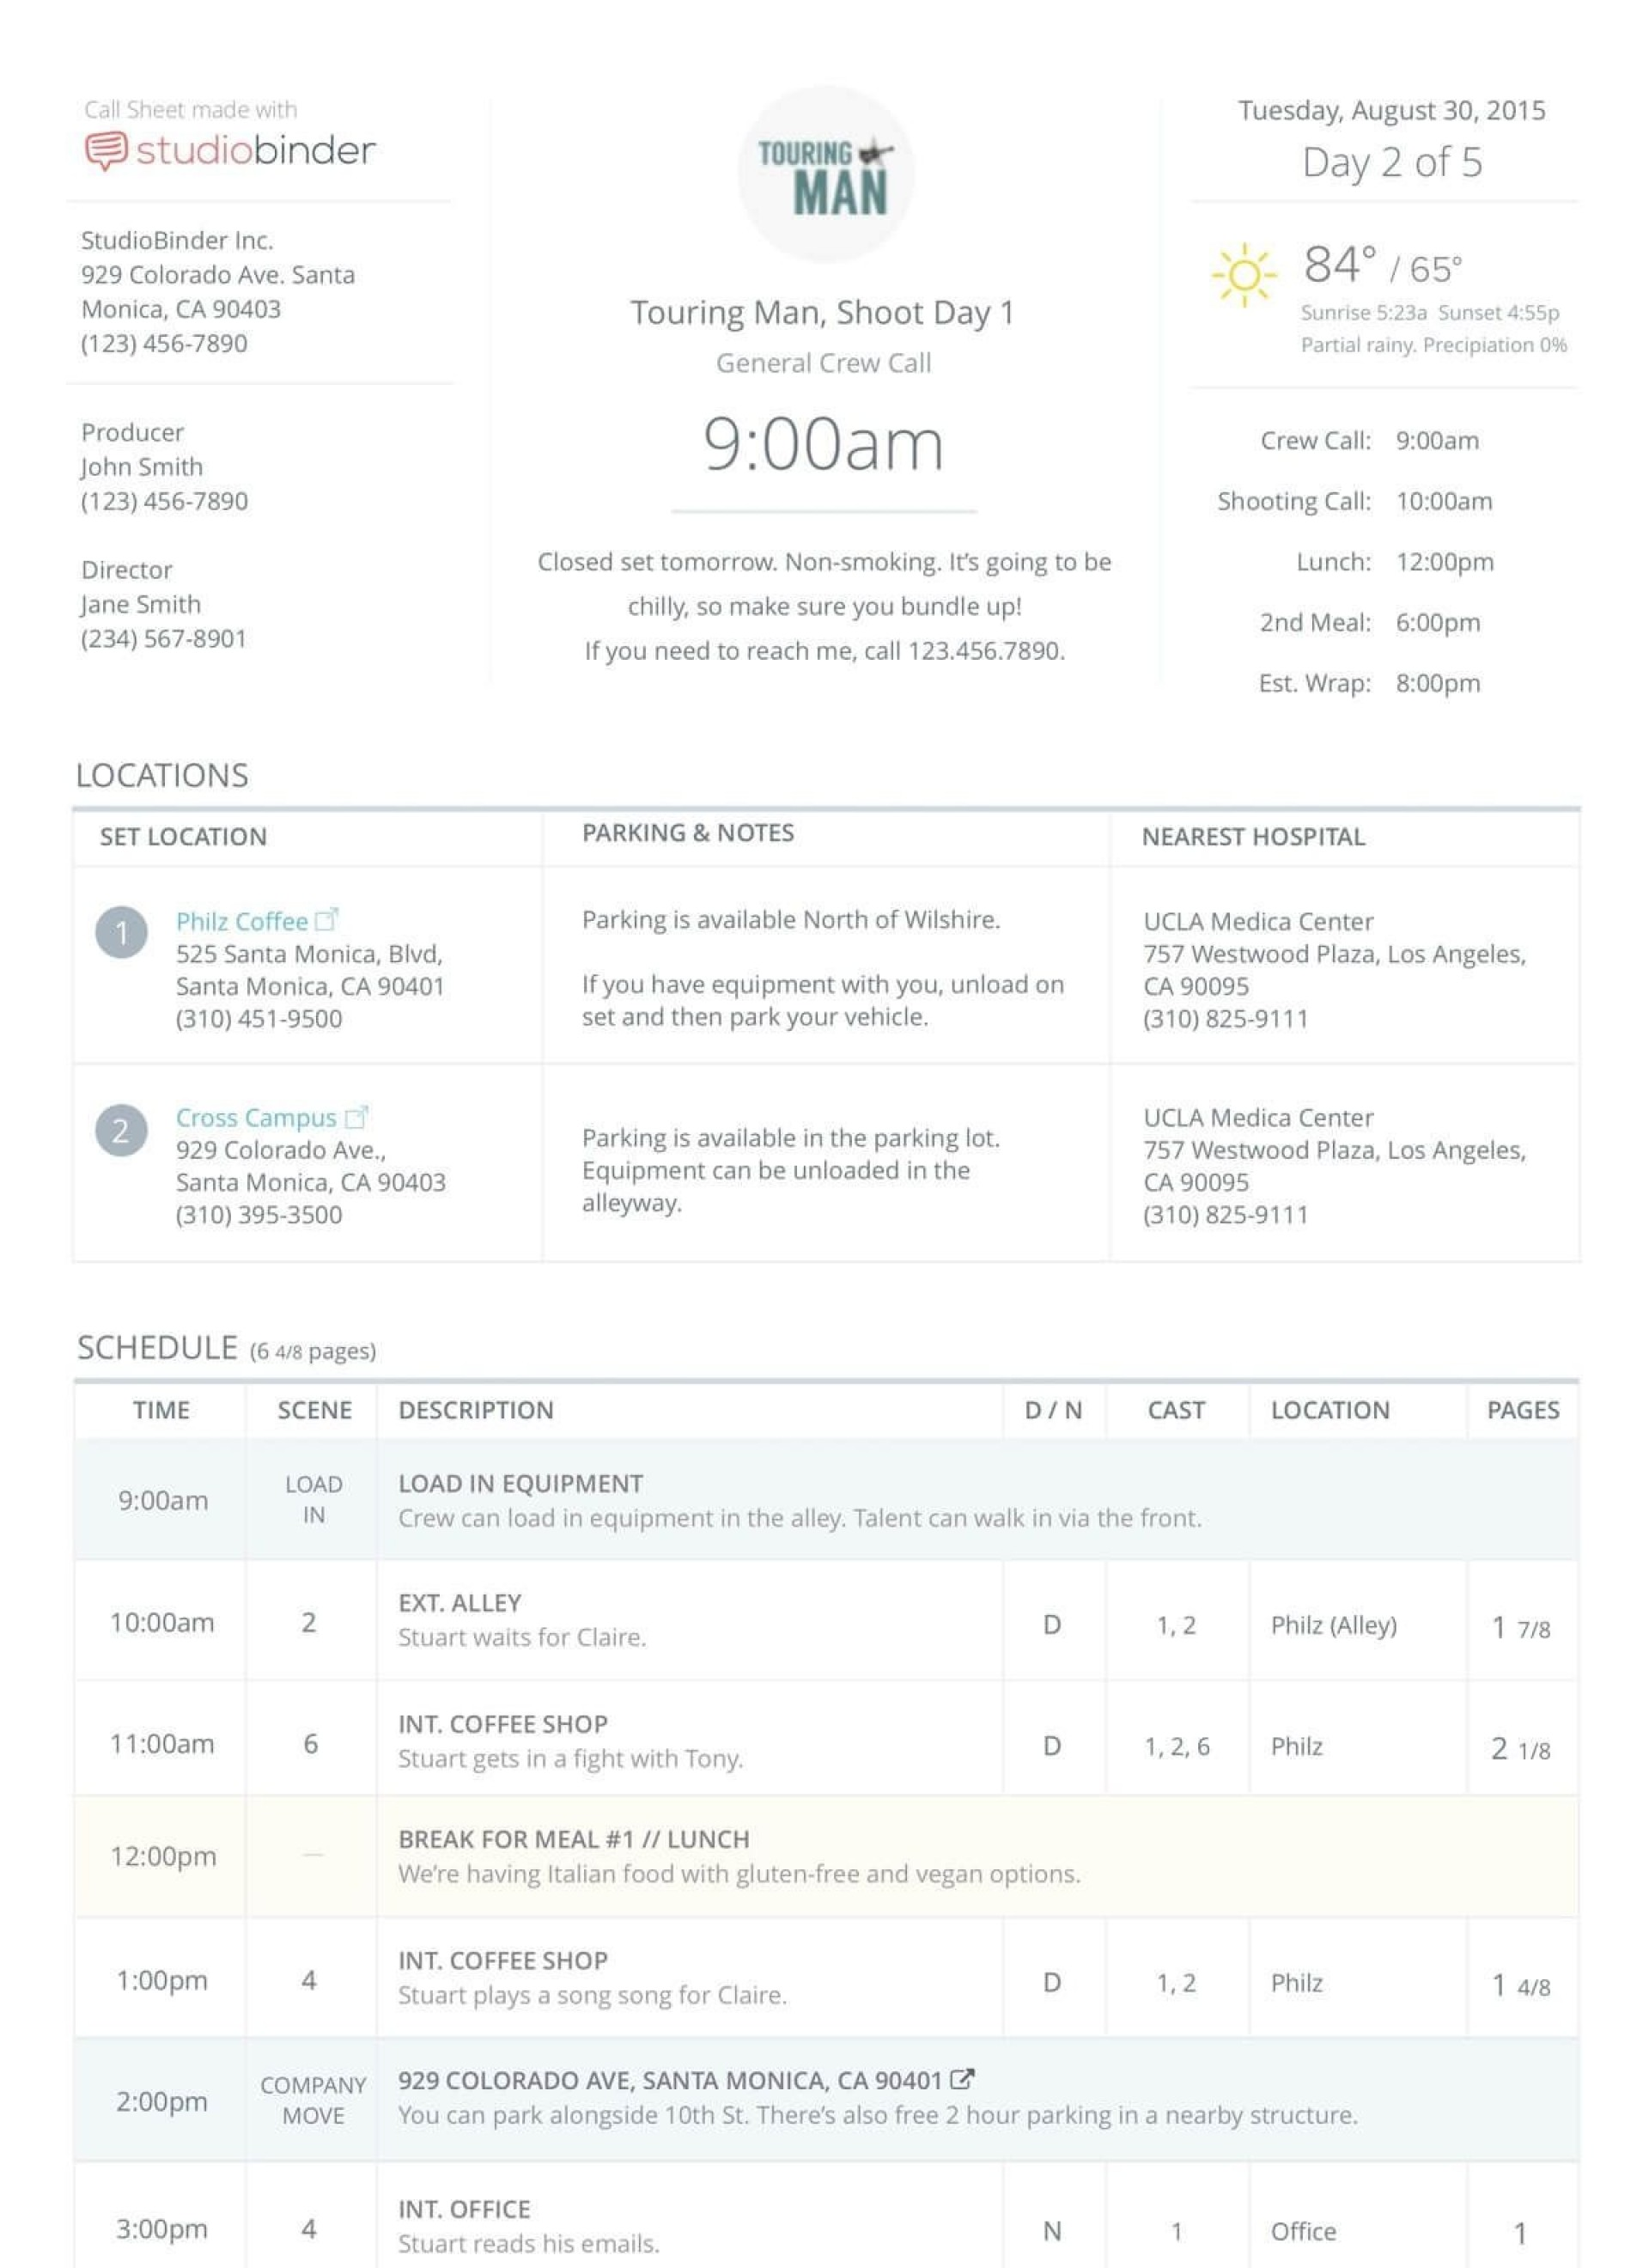 009 Stirring Film Call Sheet Template Image  Movie Excel Example Google Doc1920